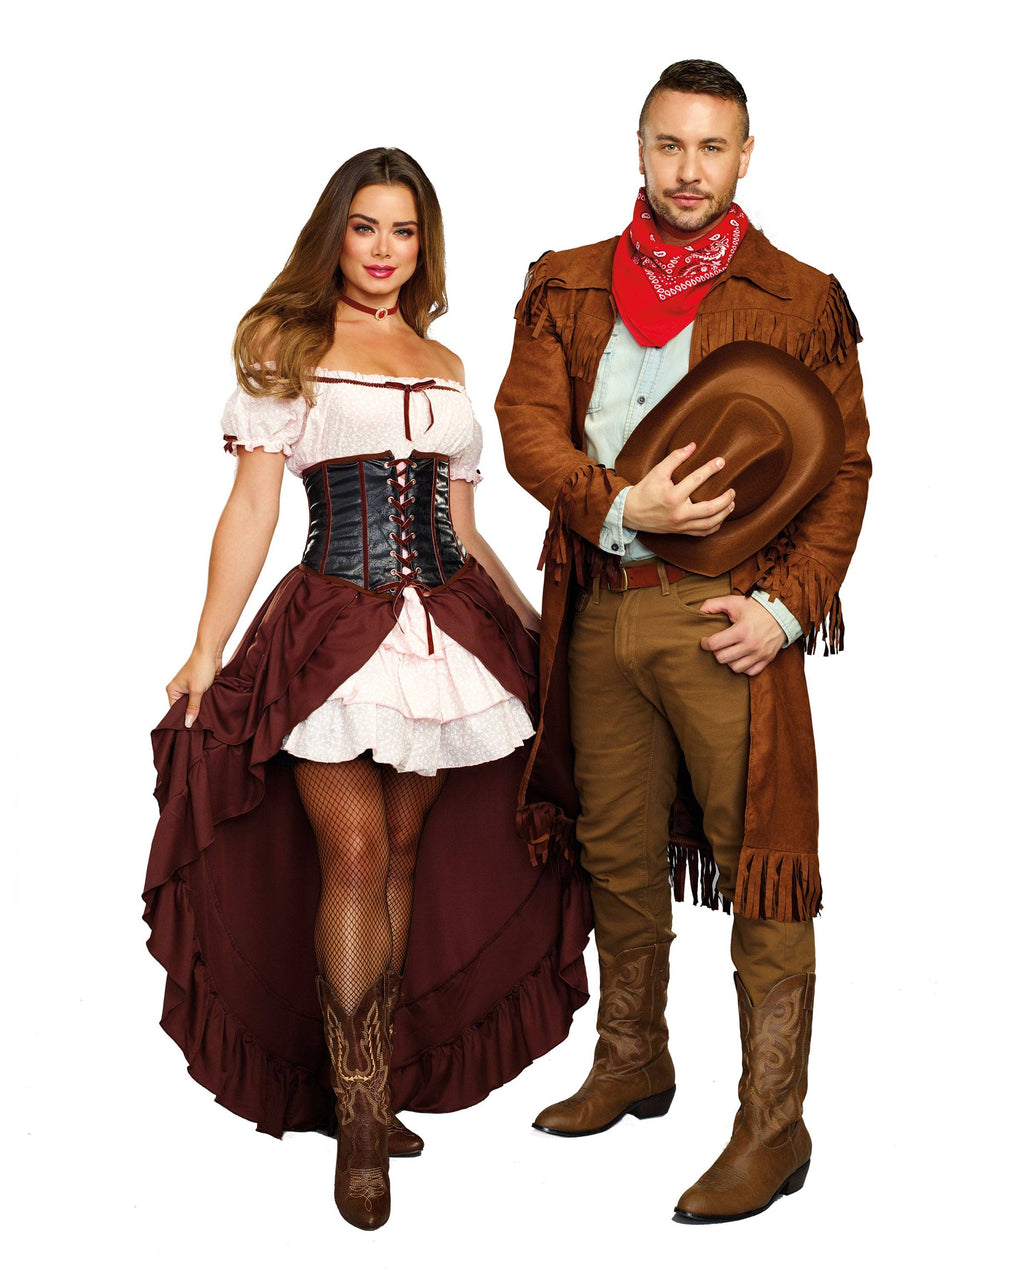 Saloon Gal Women's Costume Dreamgirl Costume